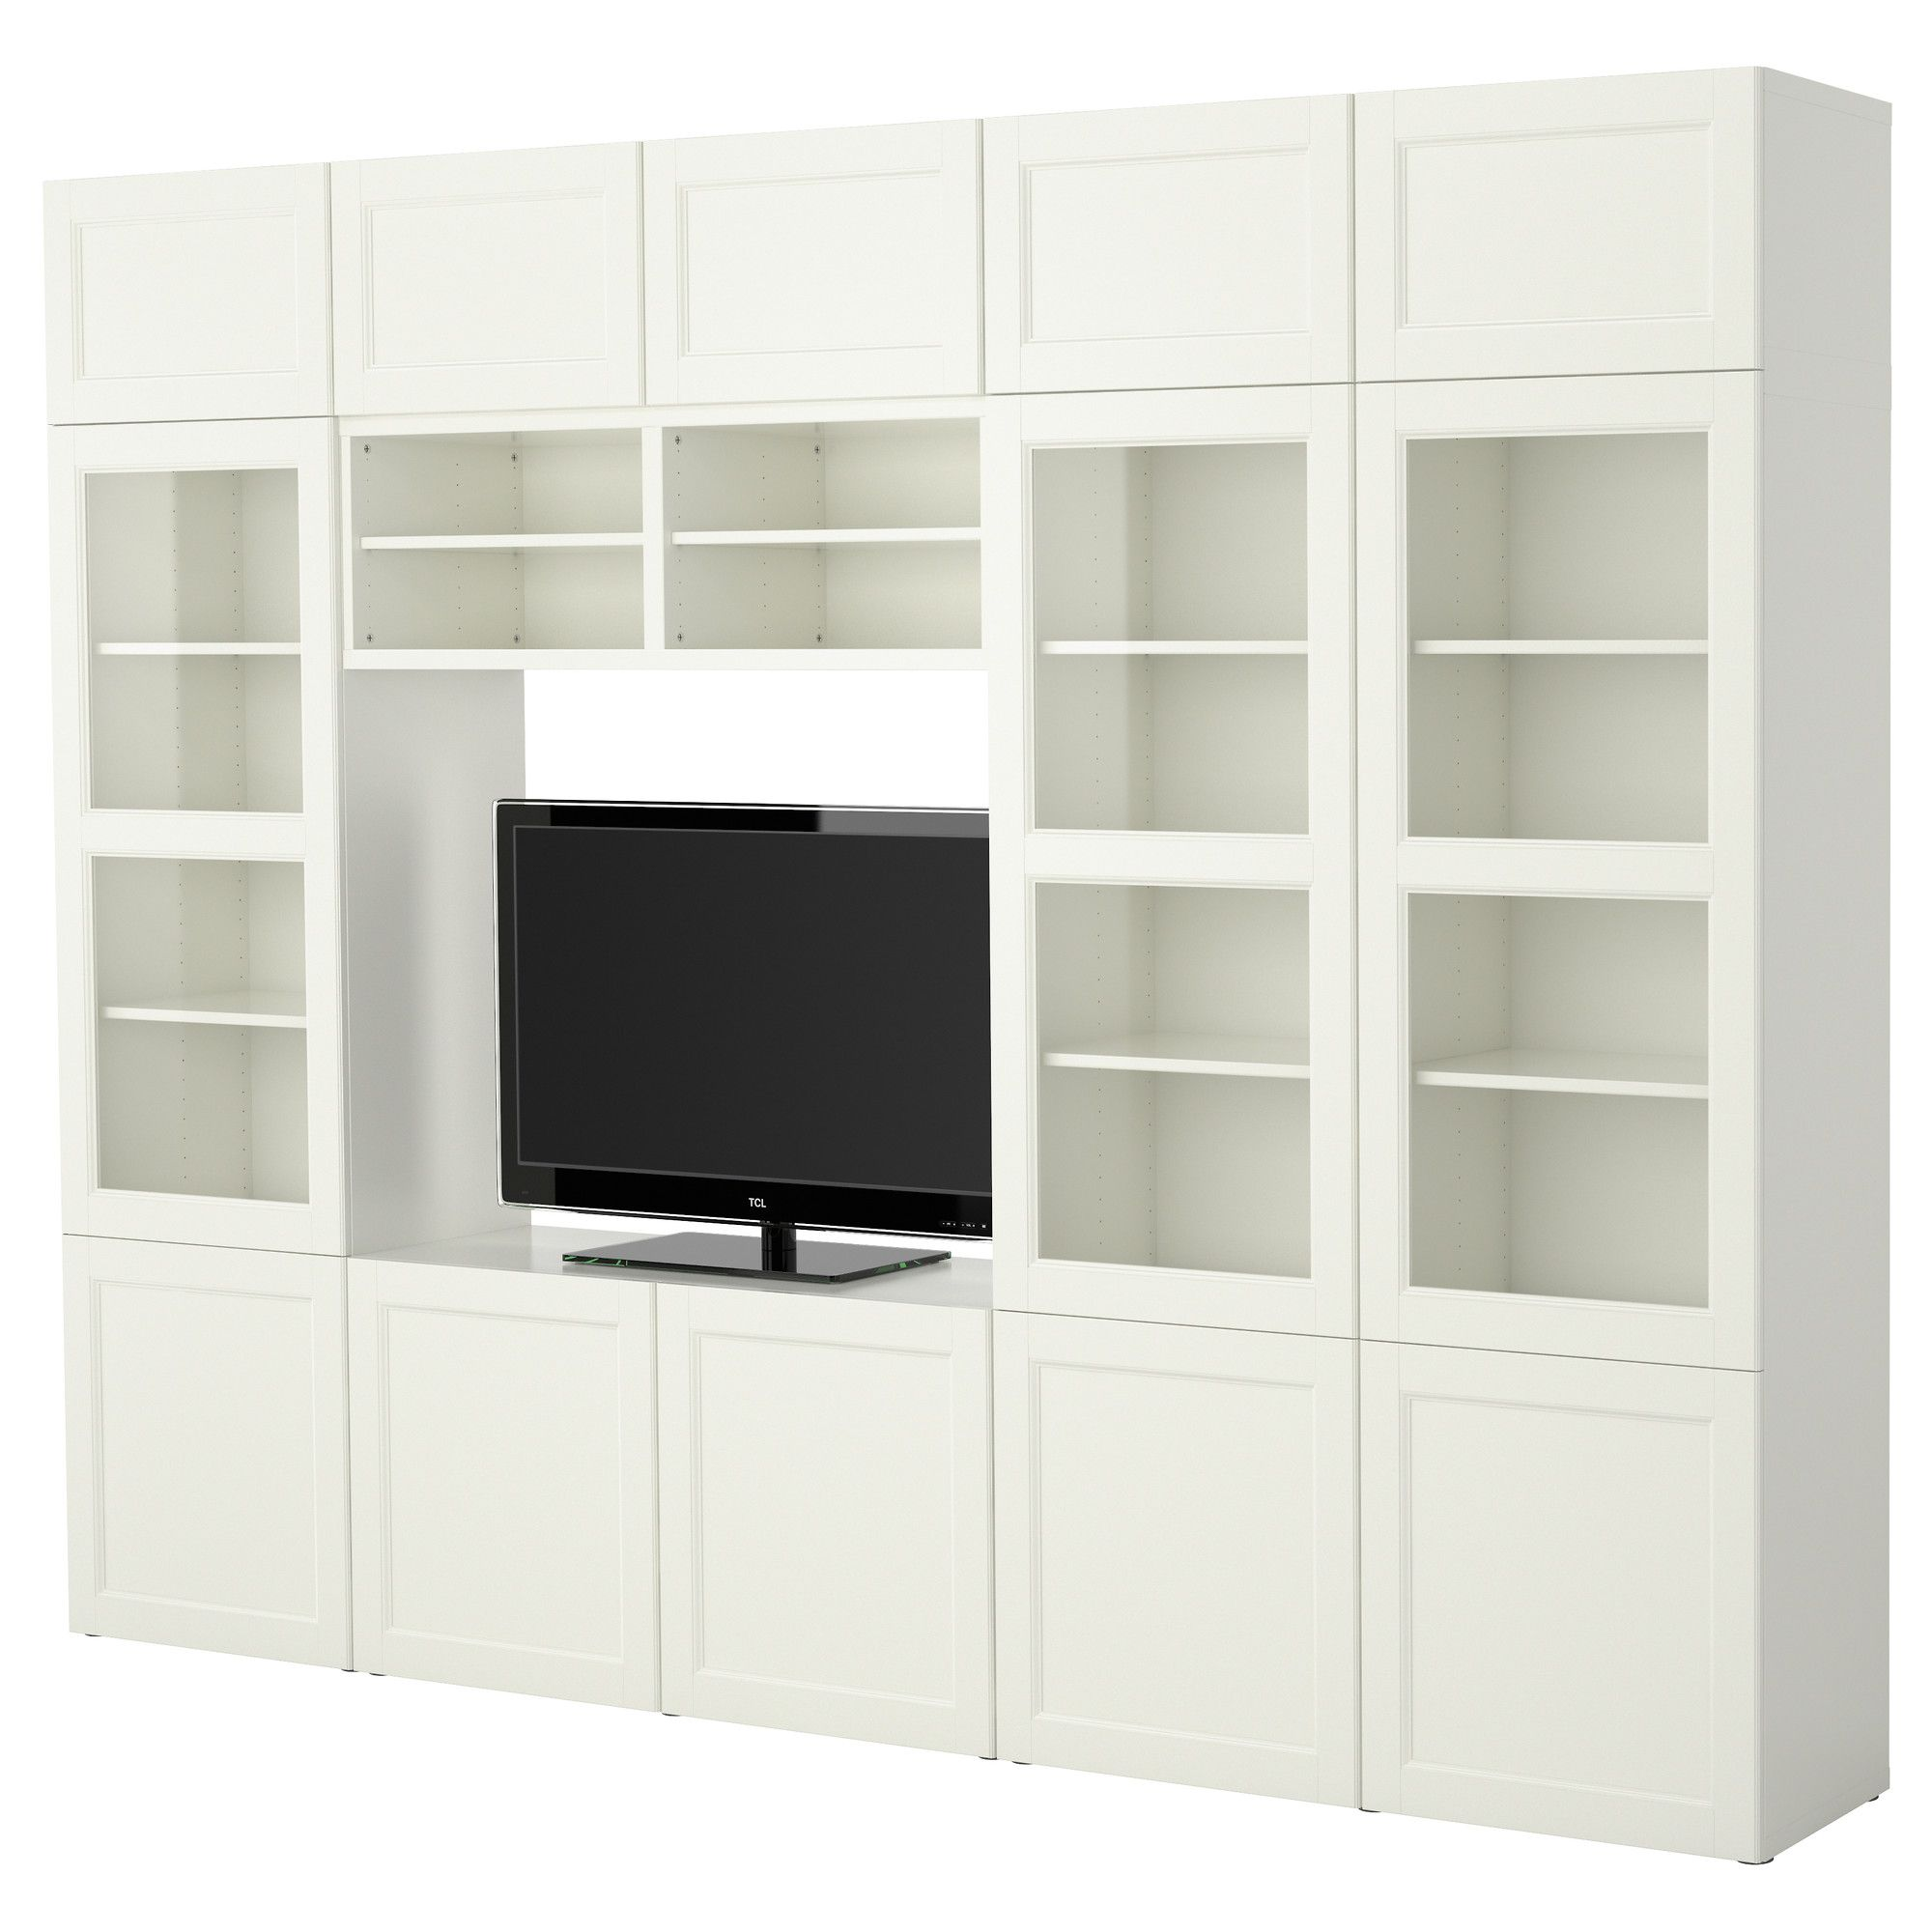 Best Tv Storage Combination Ikea 118 W X 15 75 D X 90 5 H  # Meuble Cache Tv Ikea